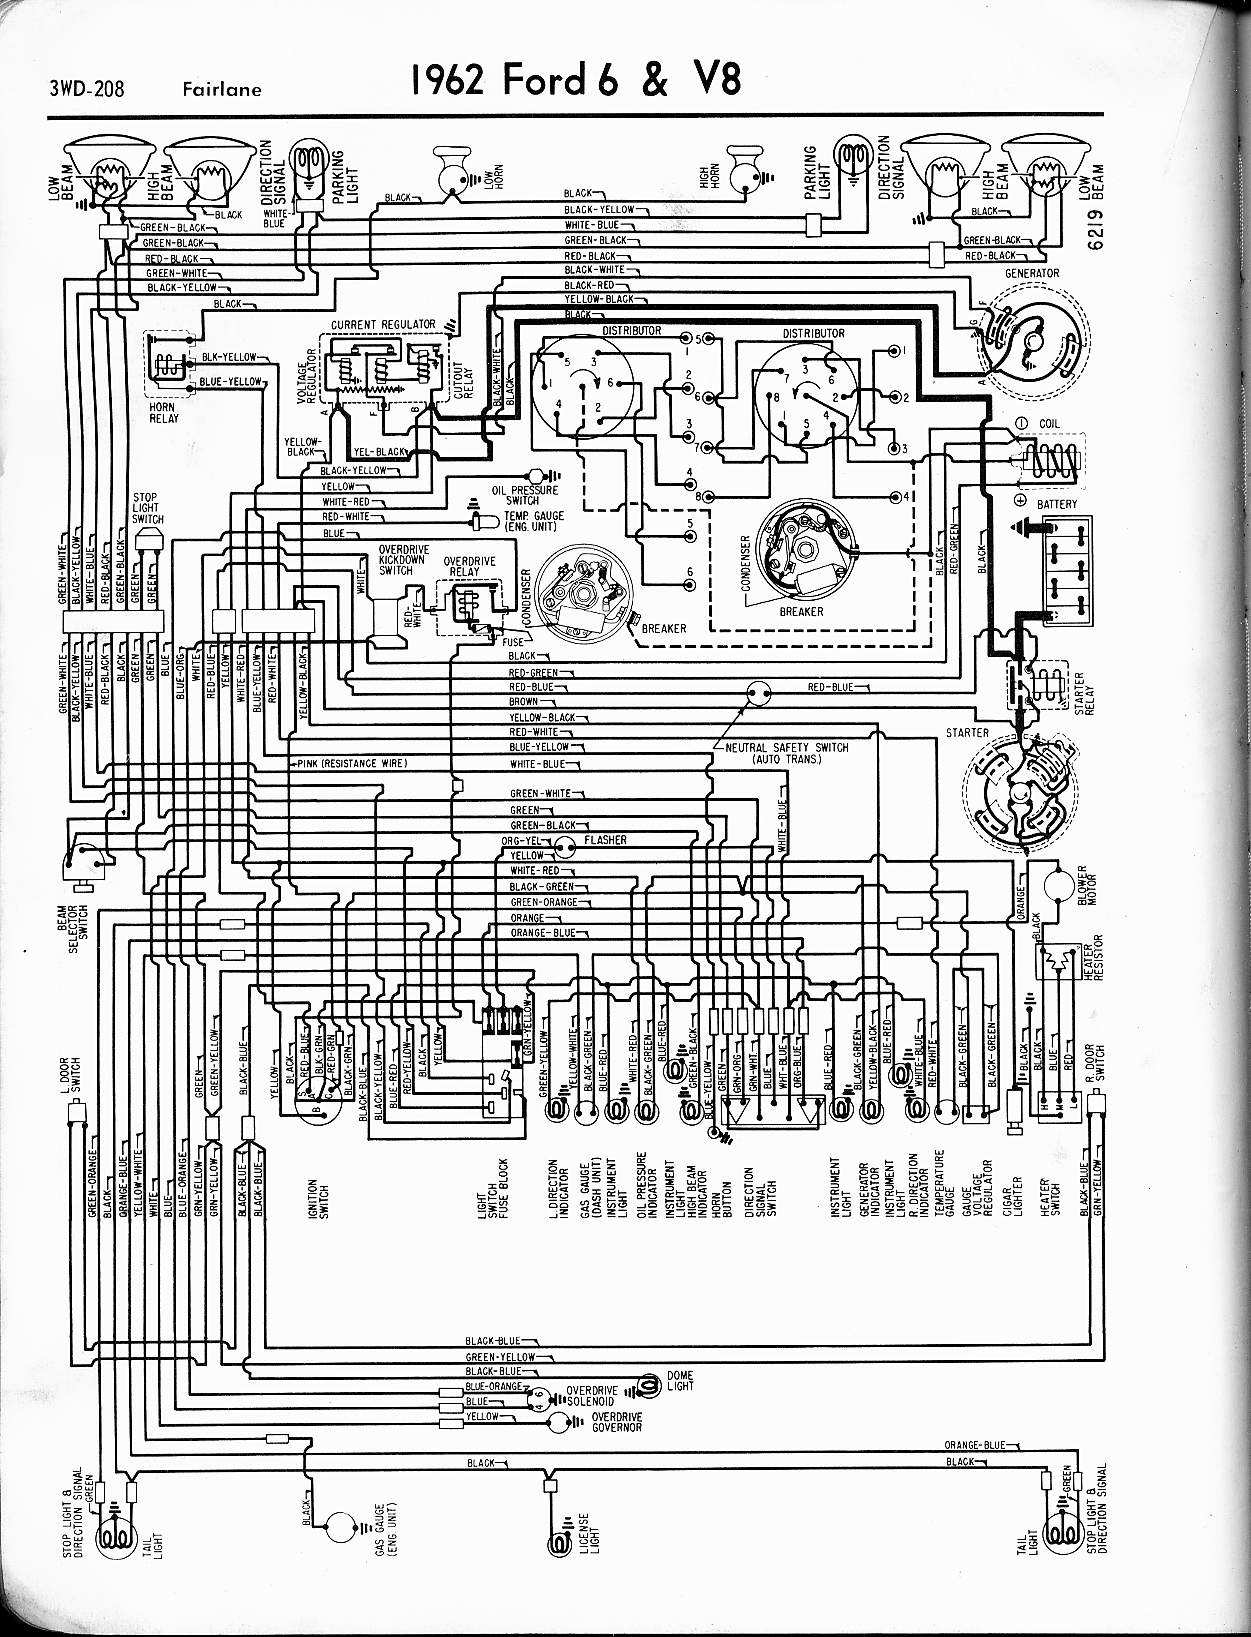 Swell 57 65 Ford Wiring Diagrams Wiring Cloud Staixuggs Outletorg